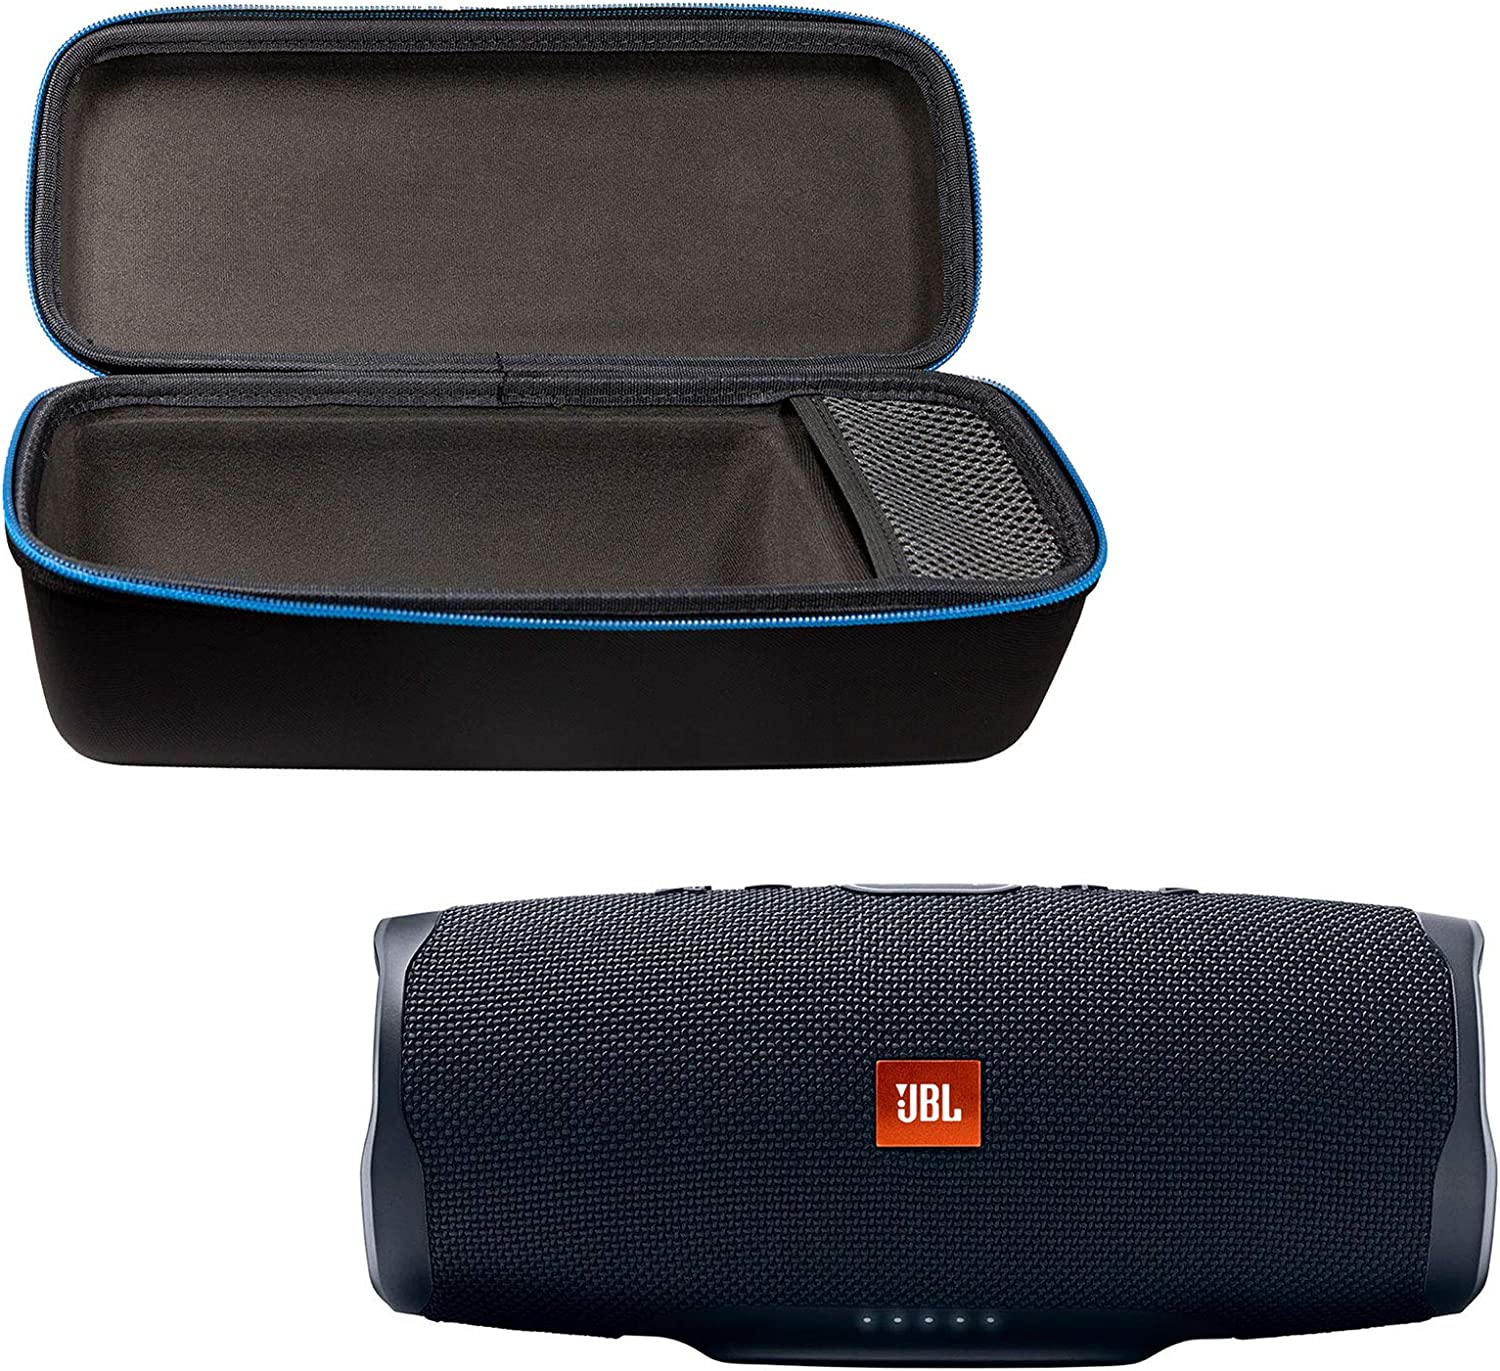 Amazon Com Jbl Charge 4 Portable Waterproof Wireless Bluetooth Speaker Bundle With Divvi Charge 4 Protective Hardshell Case Black Home Audio Theater